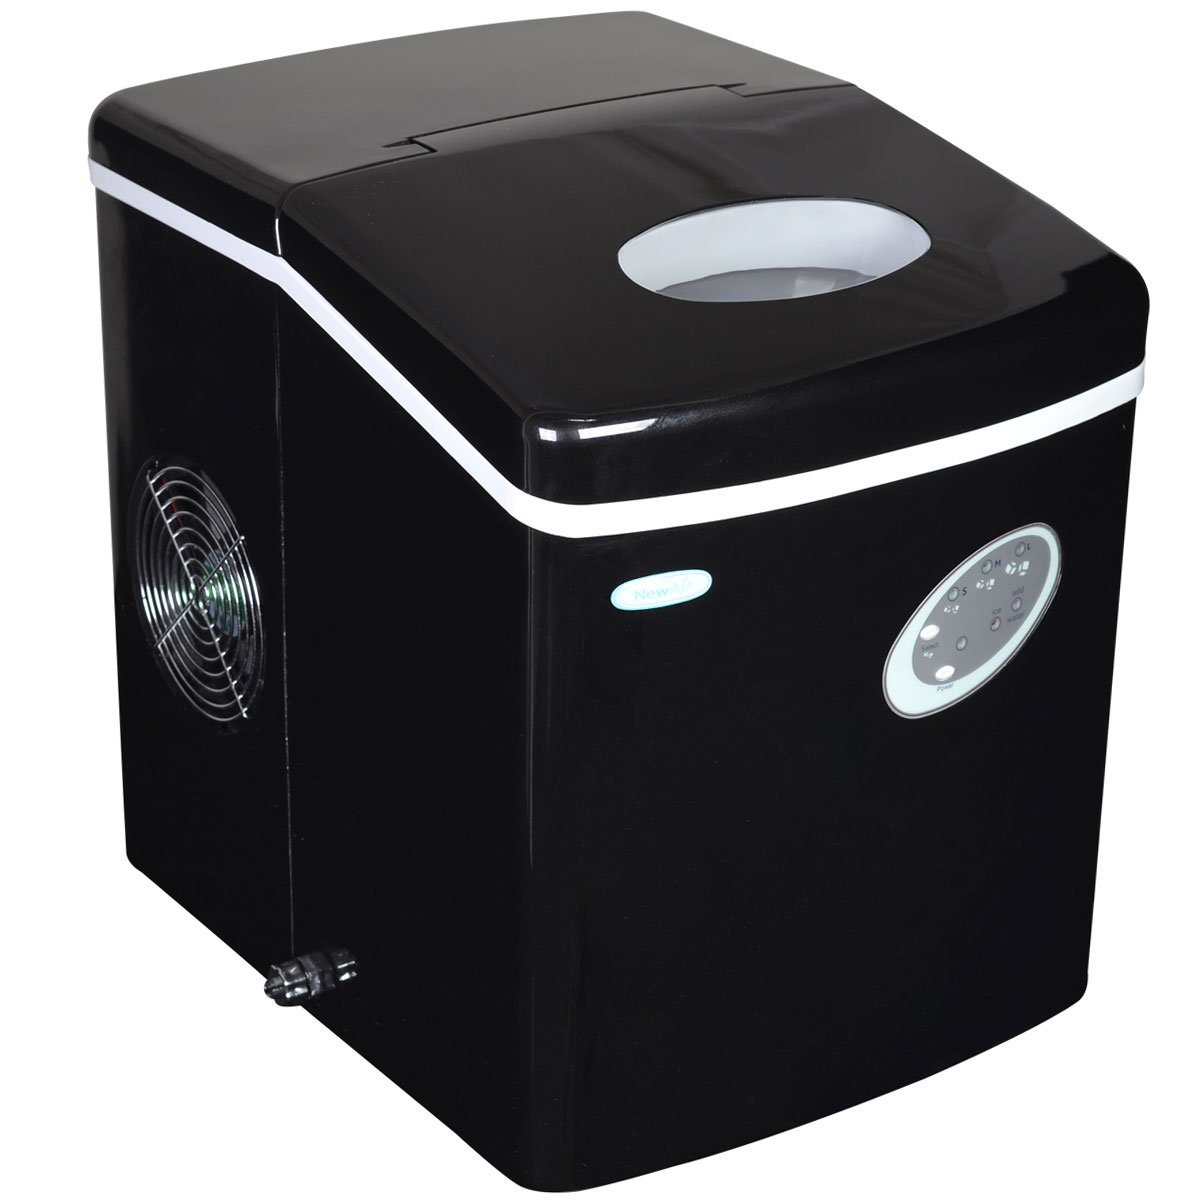 NewAir AI-100 Ice Maker Review